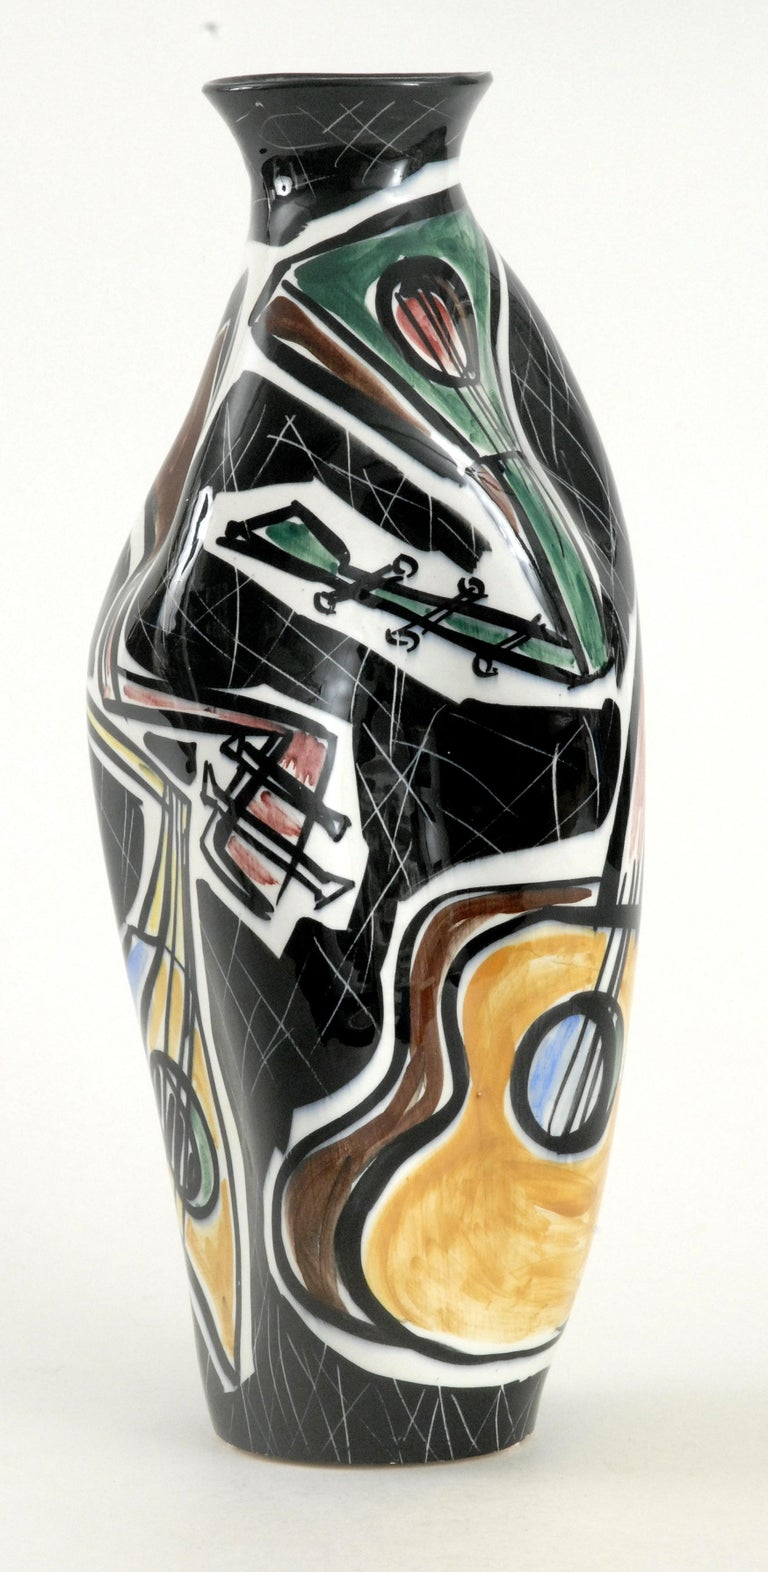 A large highly decorated vase with pushed in sides painted with guitars in various colors and shapes in white cartouches on an overall black background. Stylistically influenced by the Cubist Movement painters, Picasso and Braque et al. Stamped